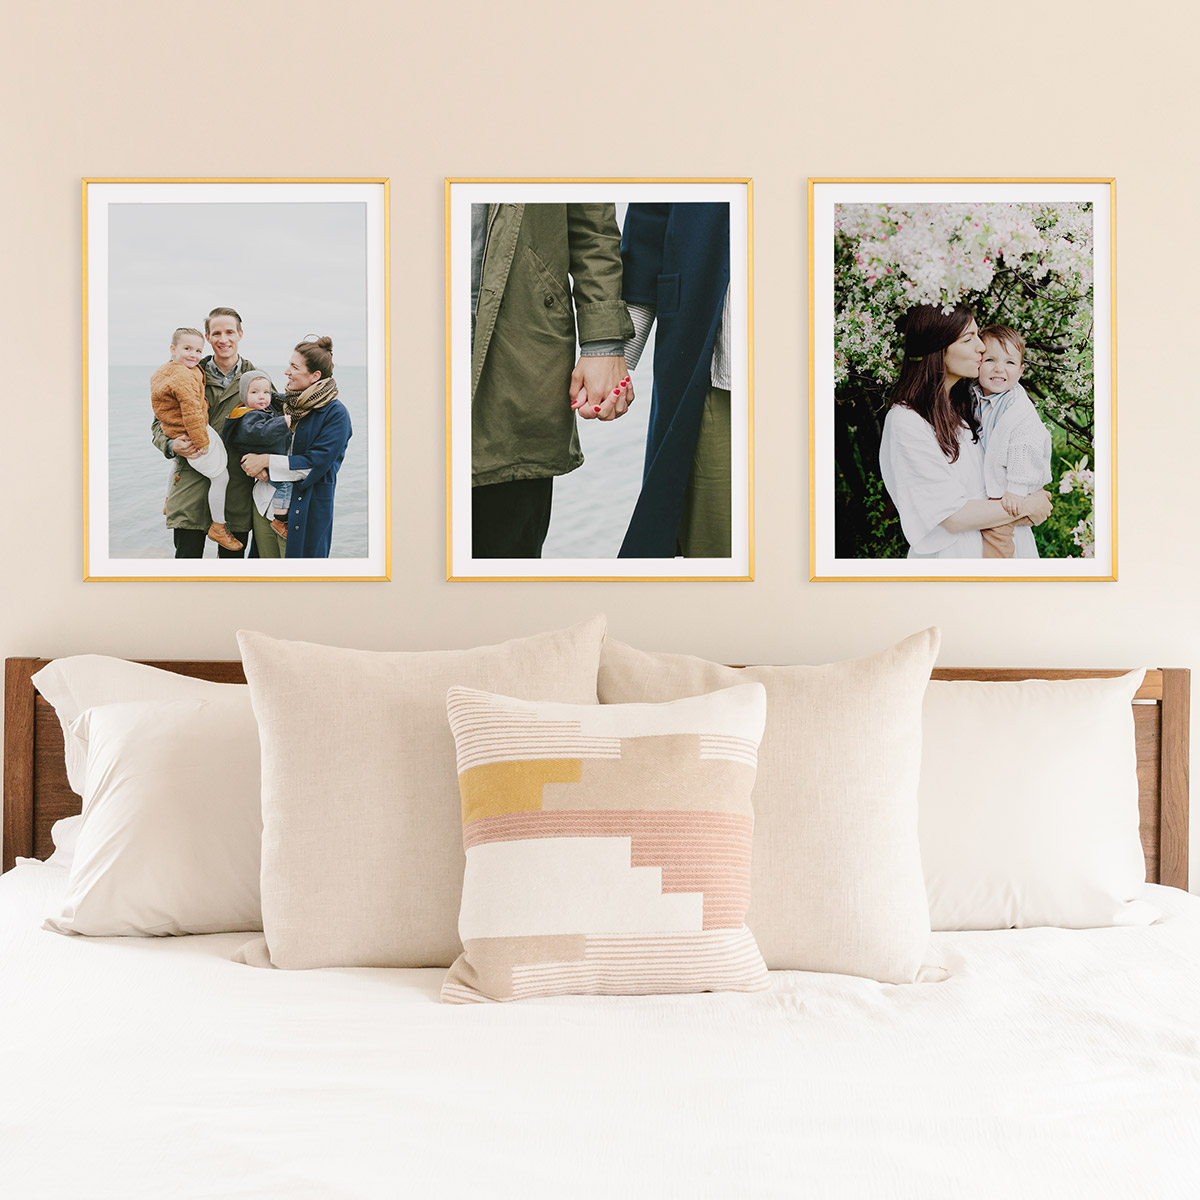 Series of framed family photos above bed